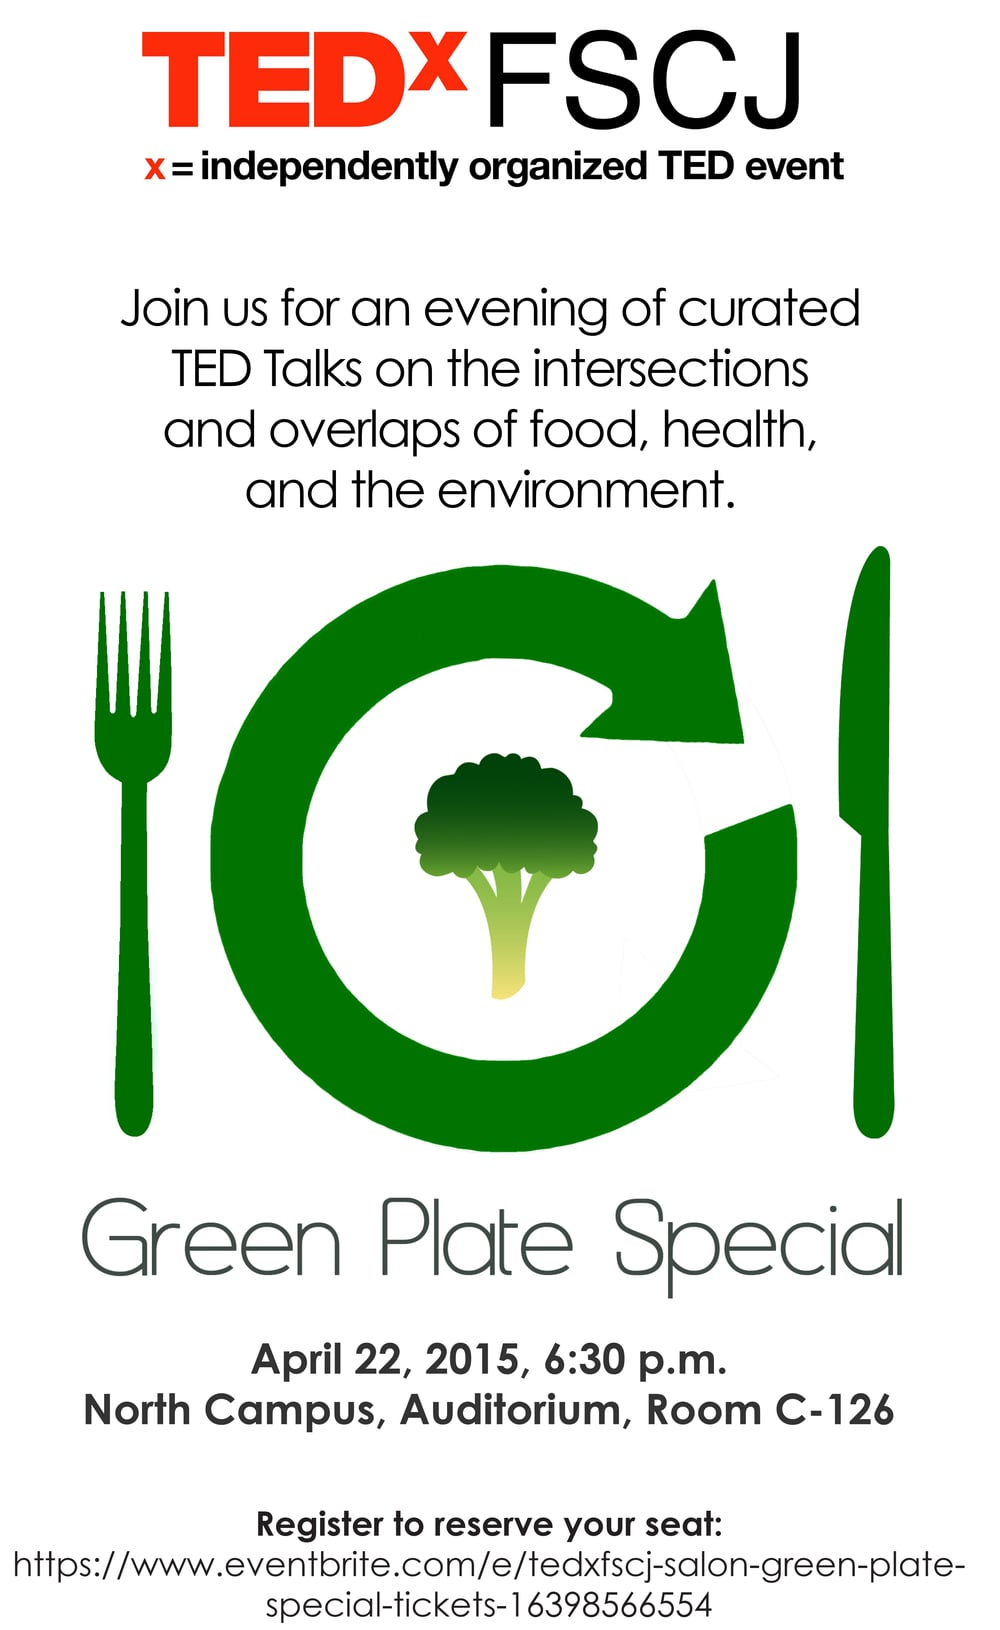 Green Plate Special Poster.jpg